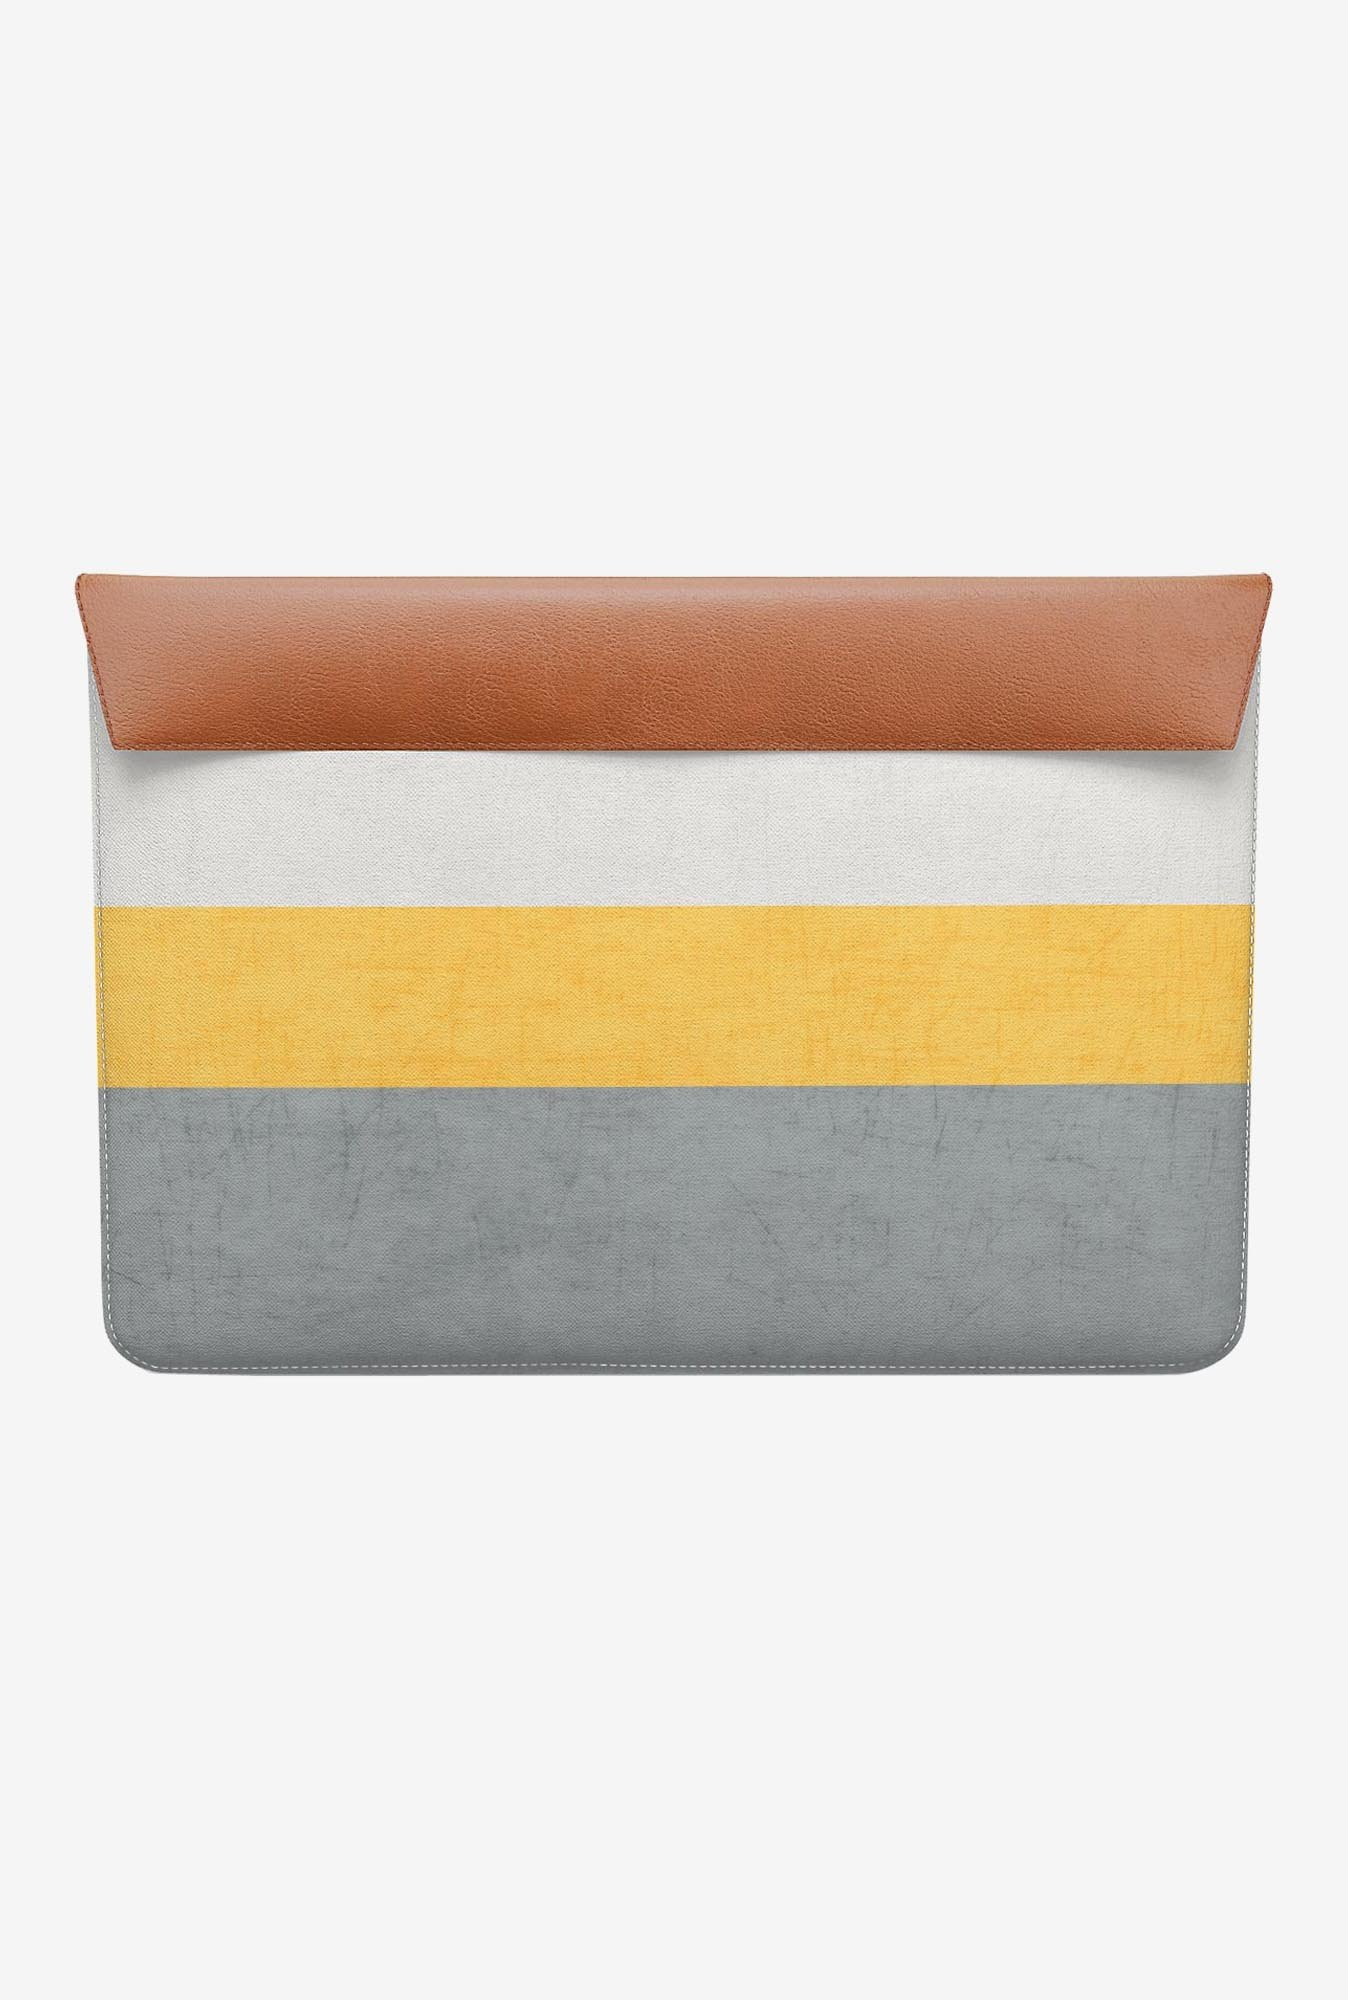 DailyObjects Summer Time MacBook Air 13 Envelope Sleeve